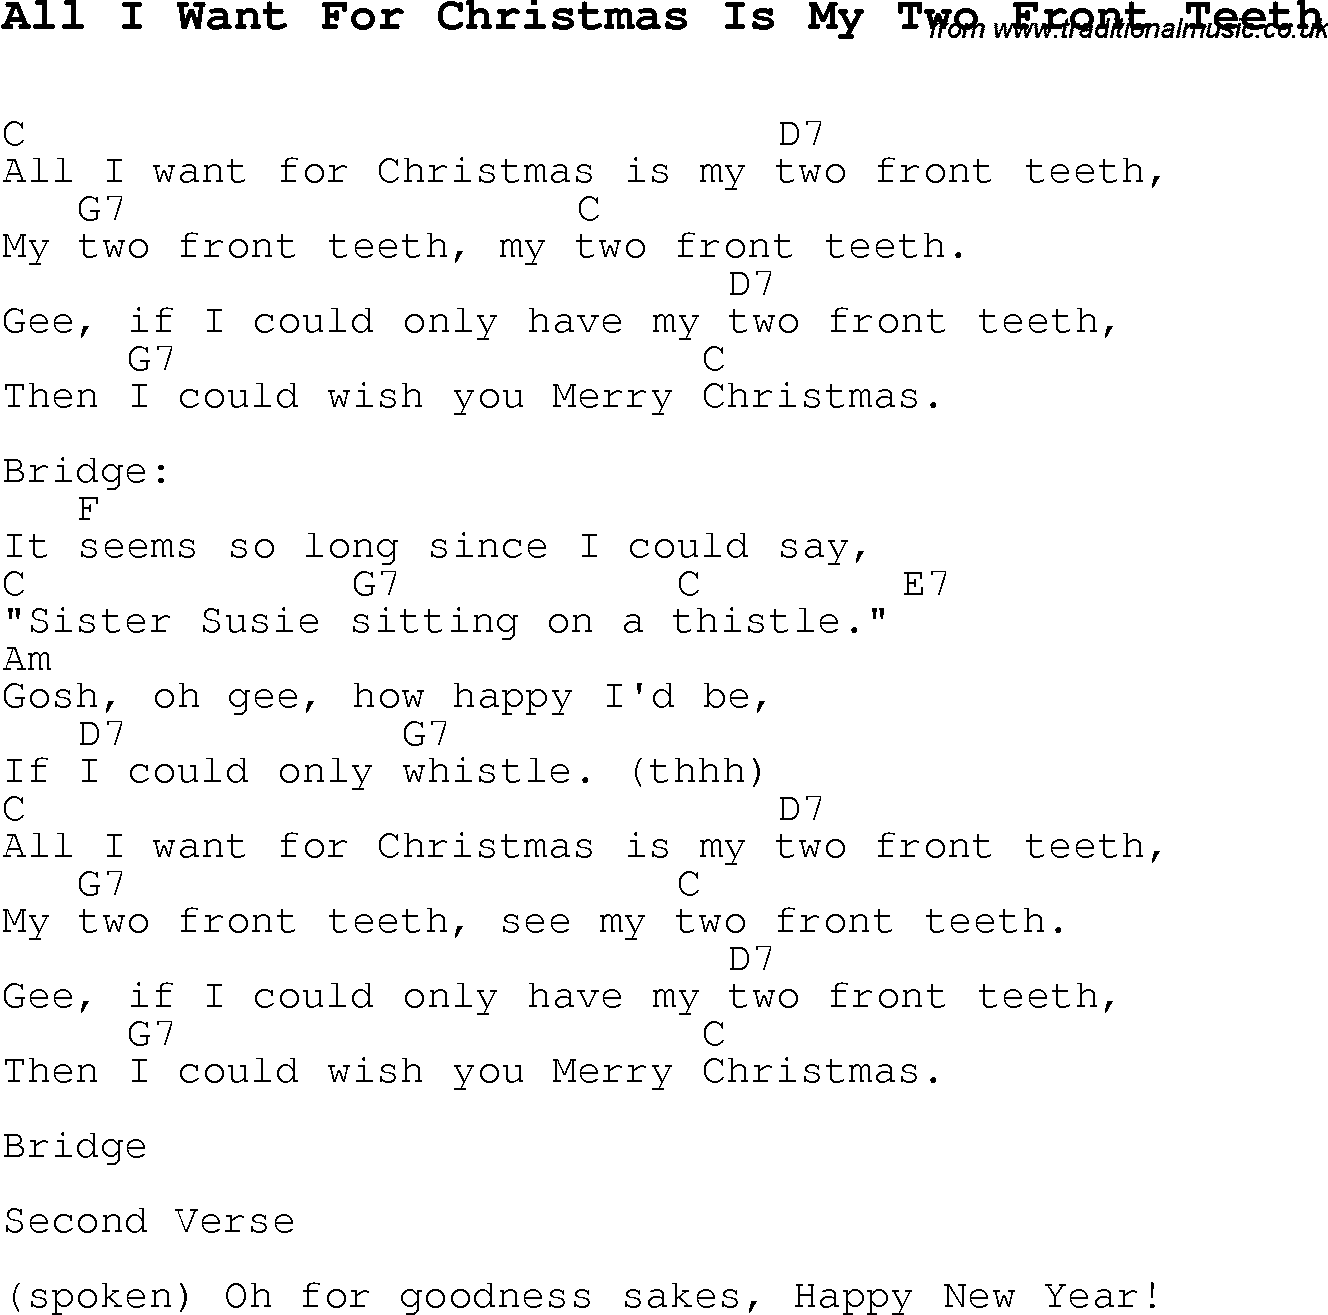 Christmas Songs And Carols Lyrics With Chords For Guitar Banjo For All I Want For Christmas Is My Two Front Te Christmas Songs Lyrics All I Want Ukulele Songs